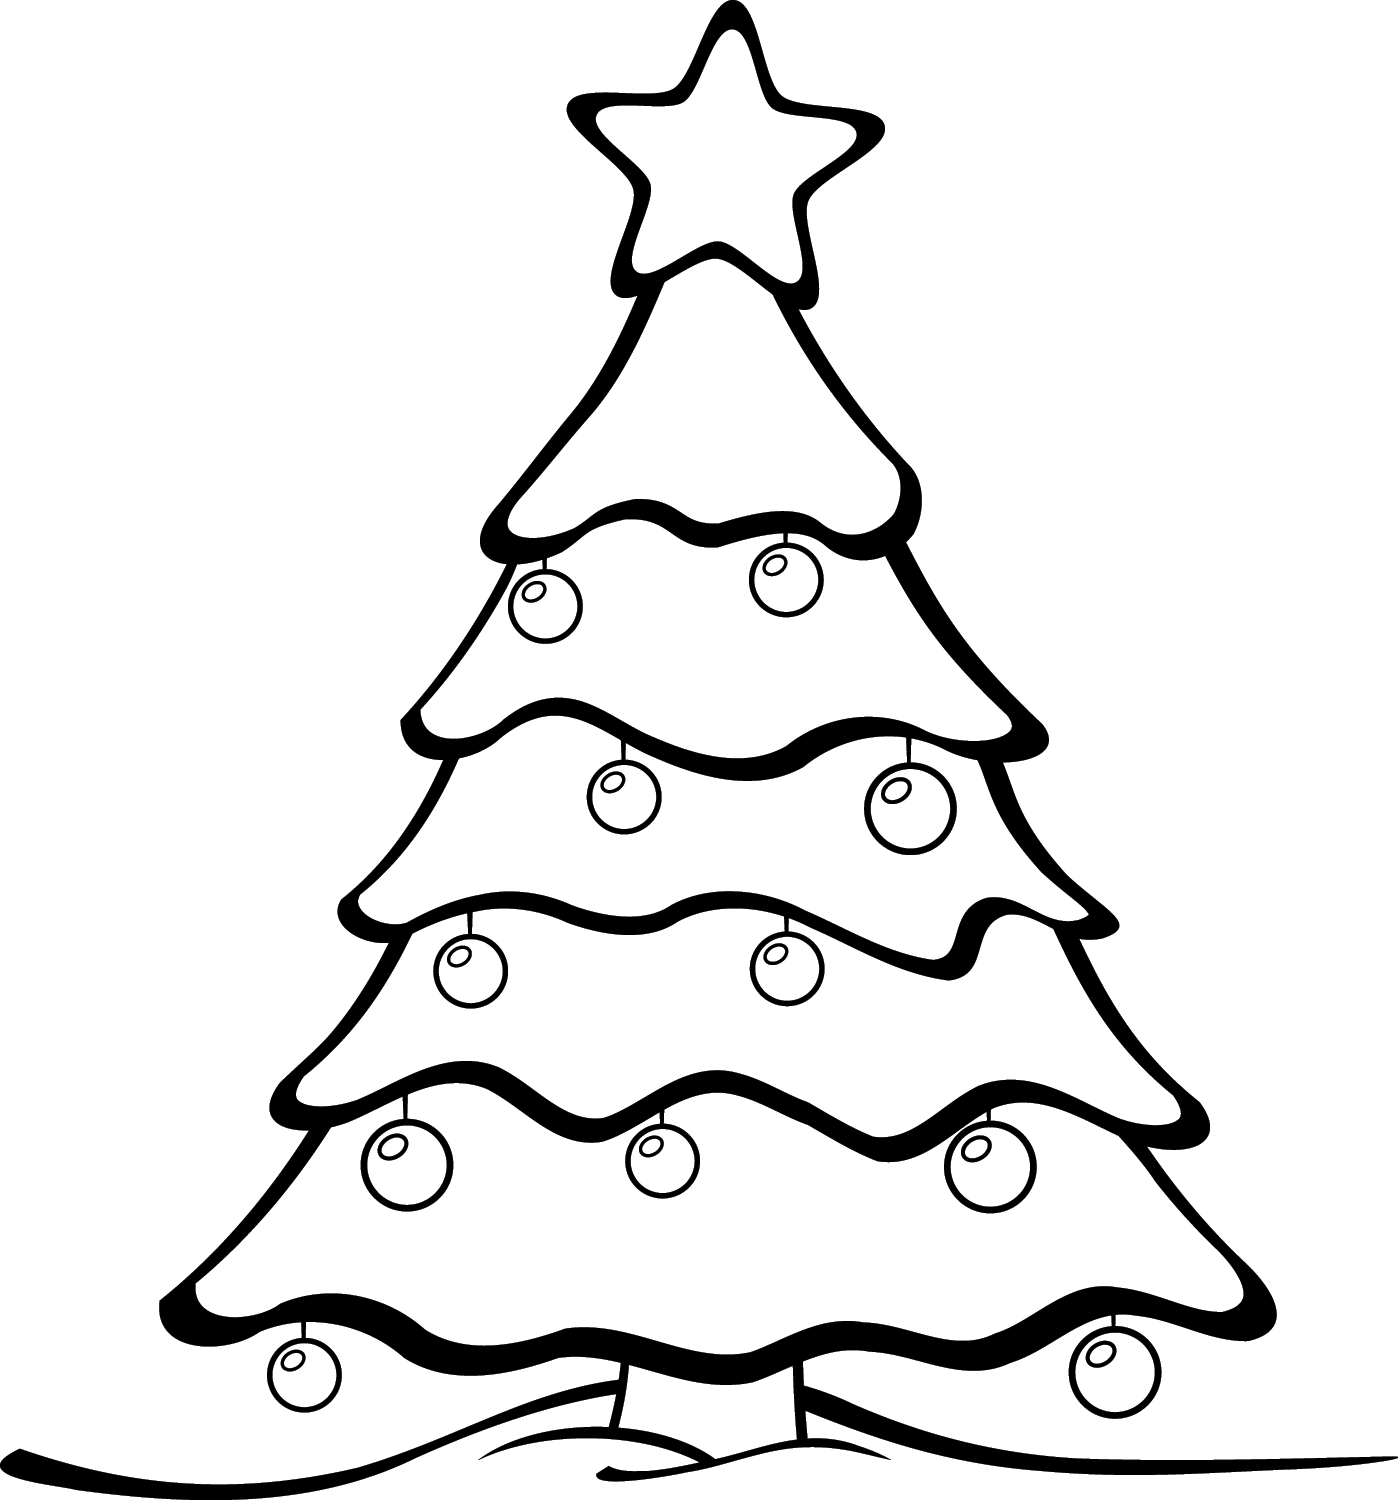 Free Christmas Tree Clip Art Borders